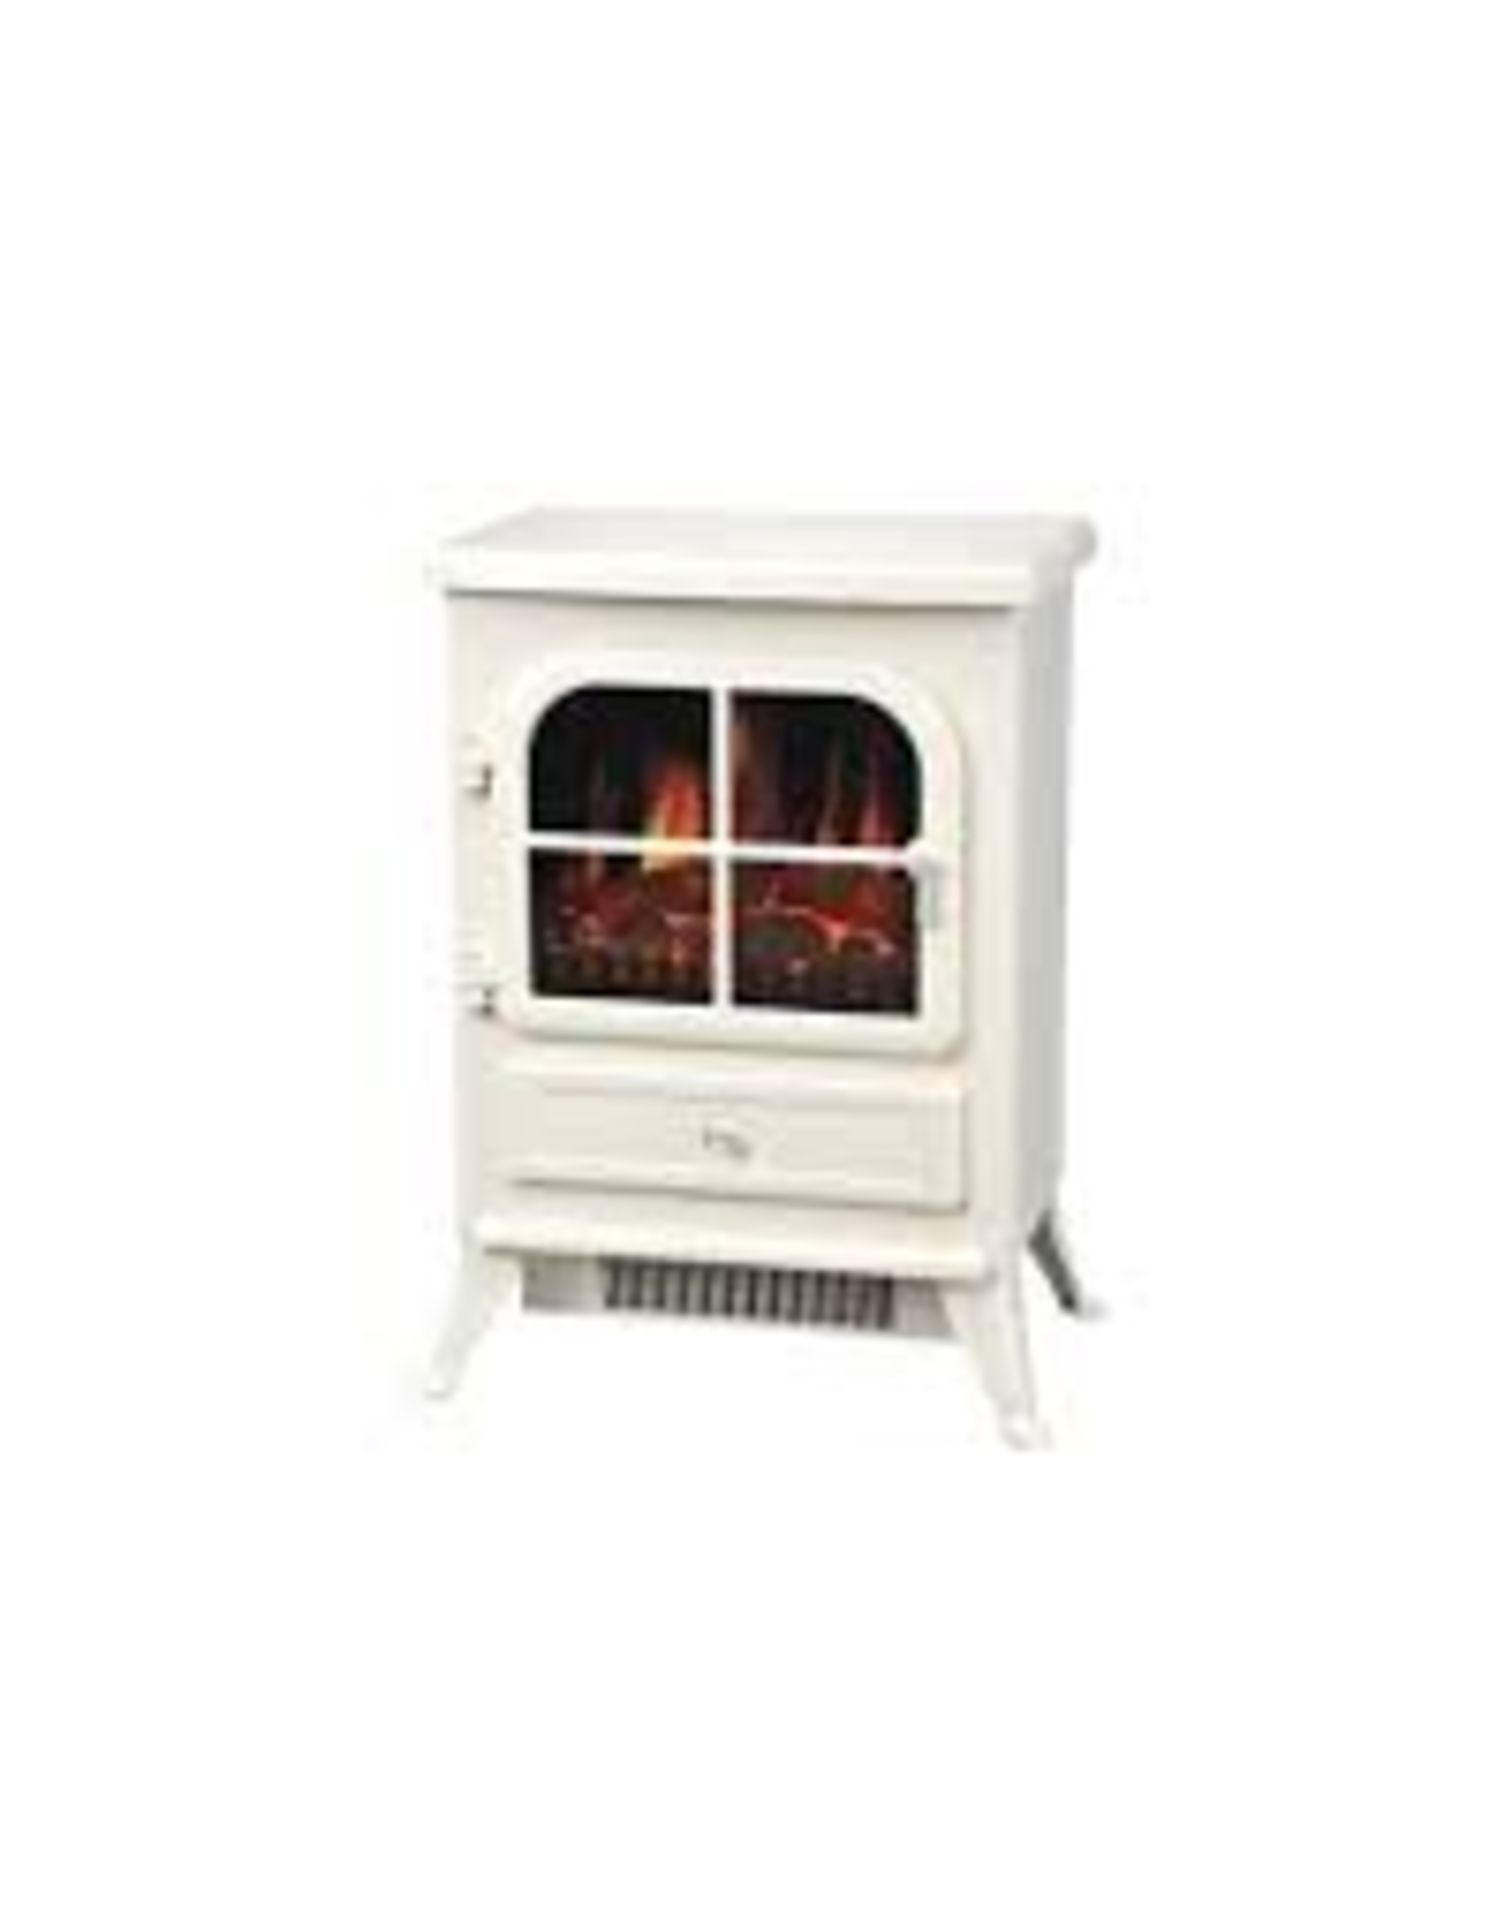 Lot 402 - Boxed Mama Flame Effect Cream Vista Stove Fire Place RRP £125 (13011) (Appraisals Are Available Upon